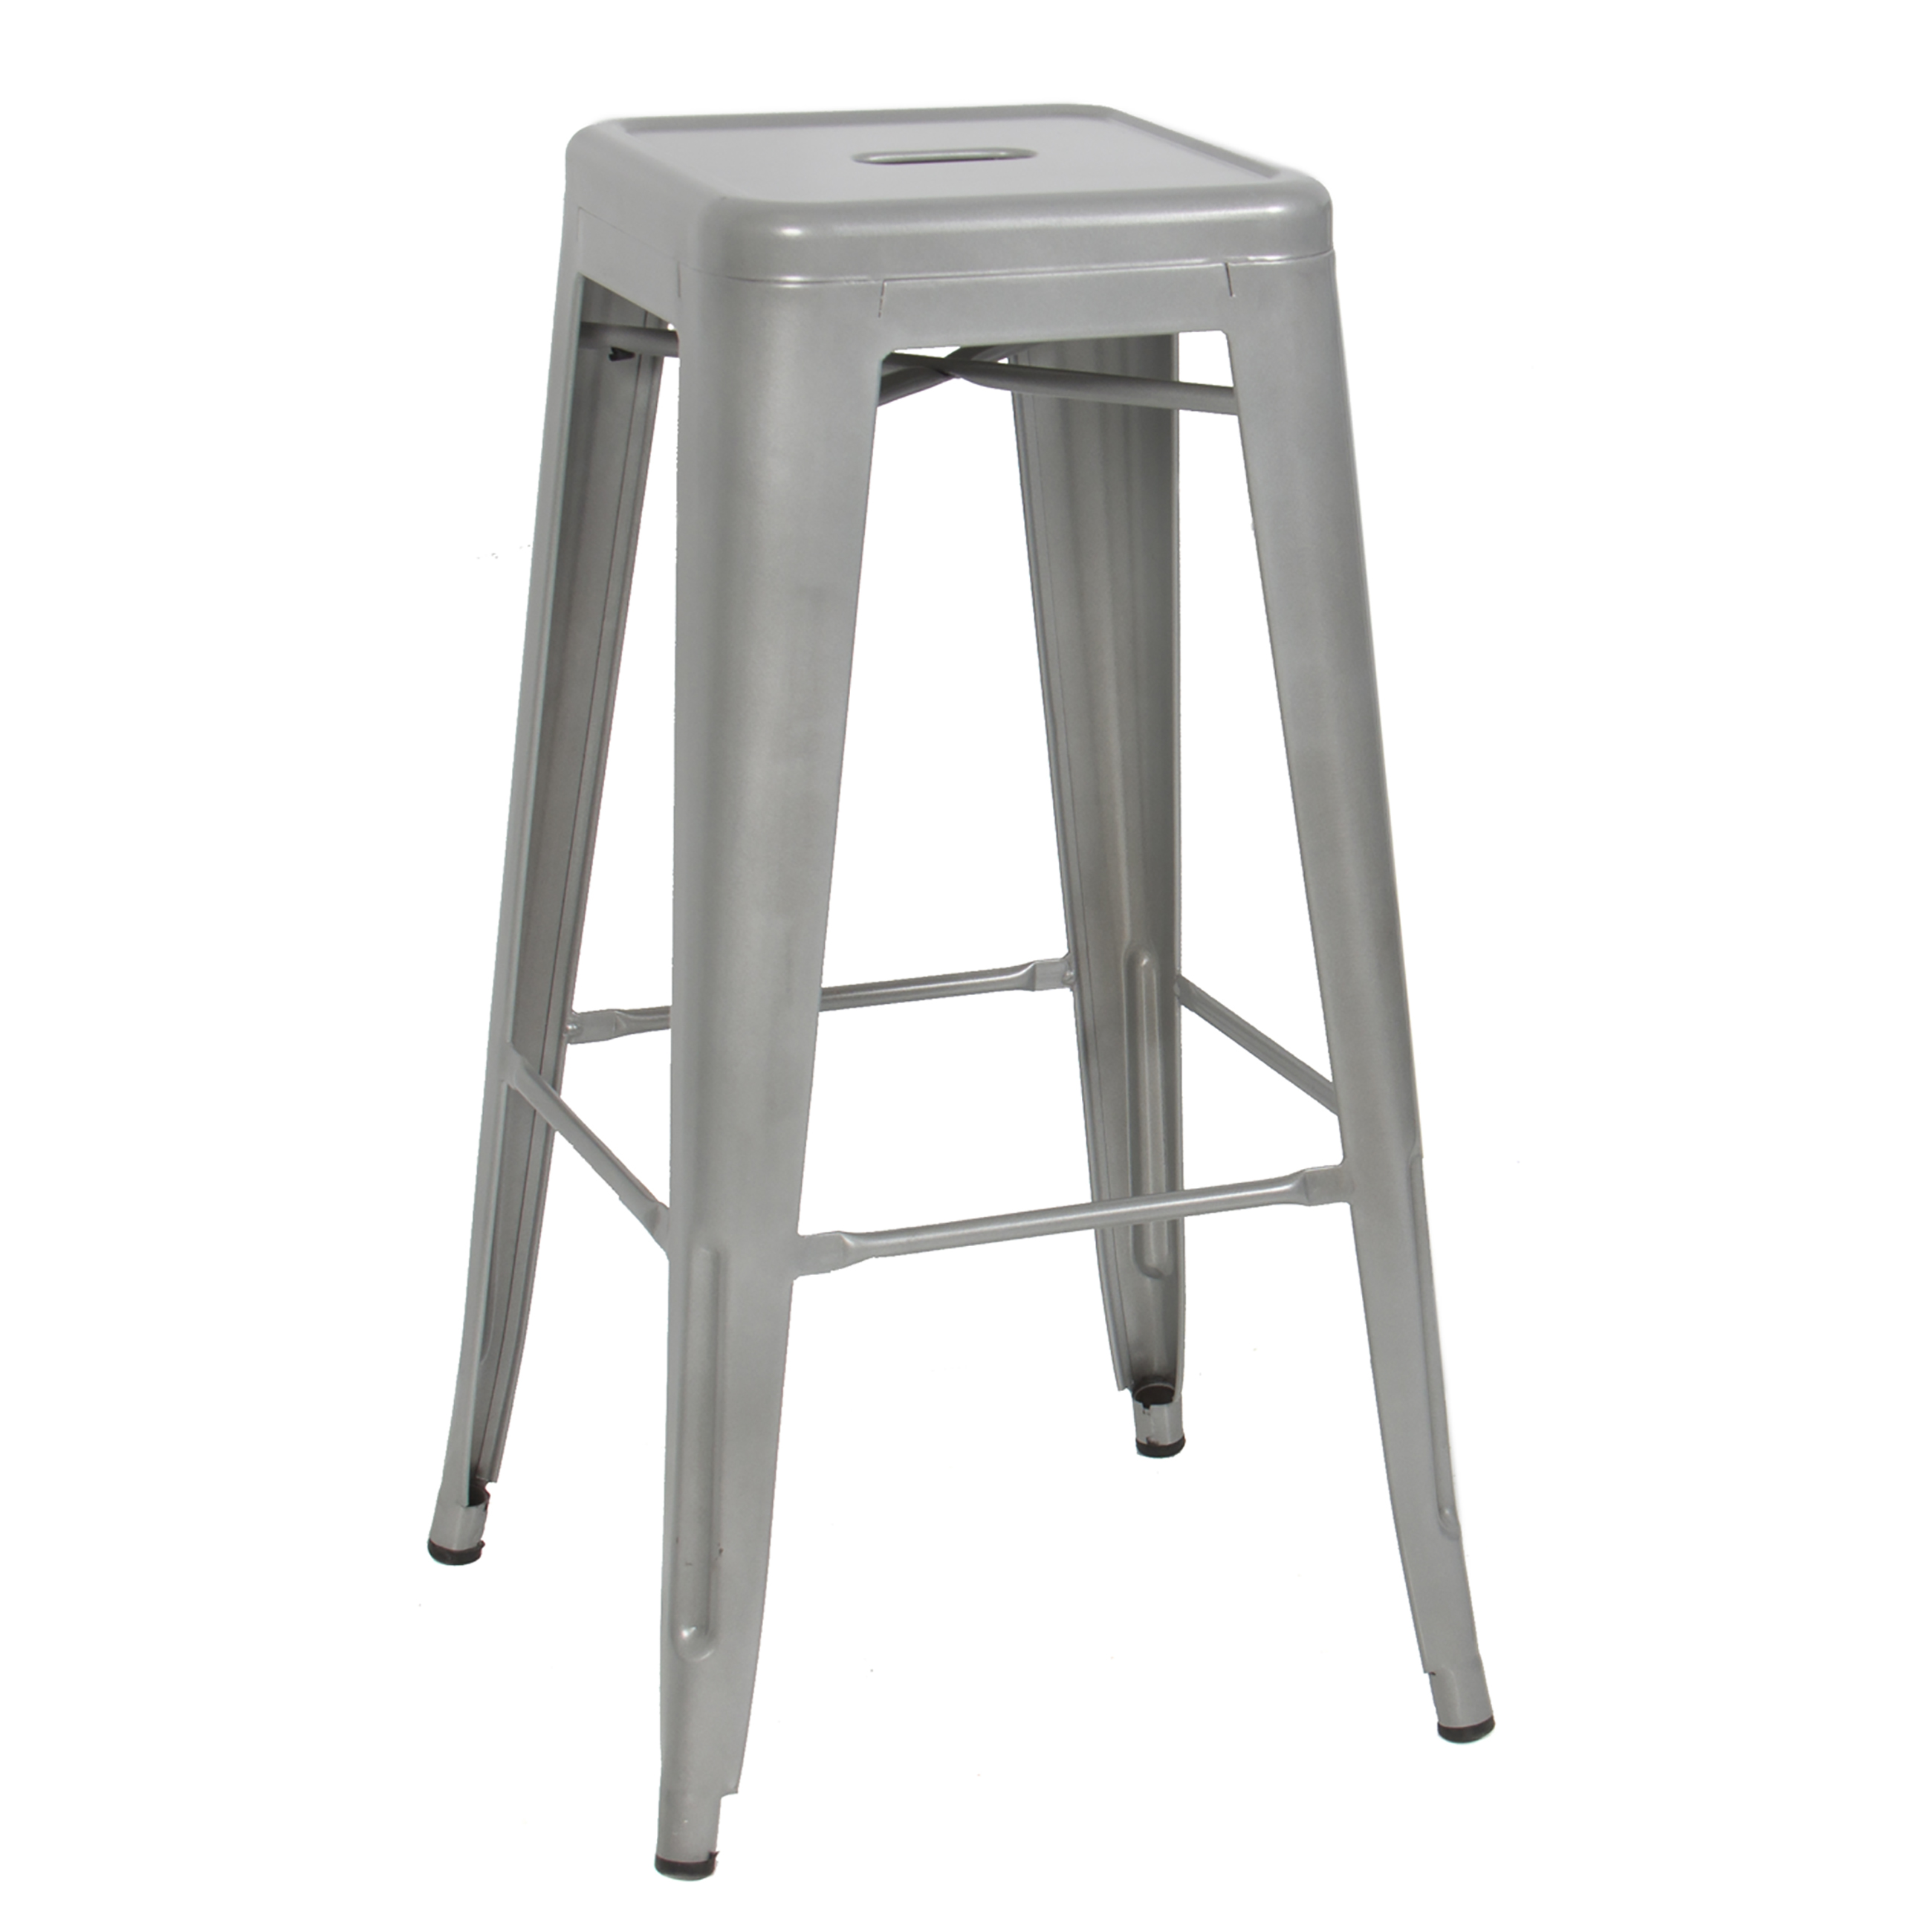 Best Choice Products 30  Set of 2 Modern Industrial Backless Metal Bar Stools (Silver) - Walmart.com  sc 1 st  Walmart : bar stools metal - islam-shia.org